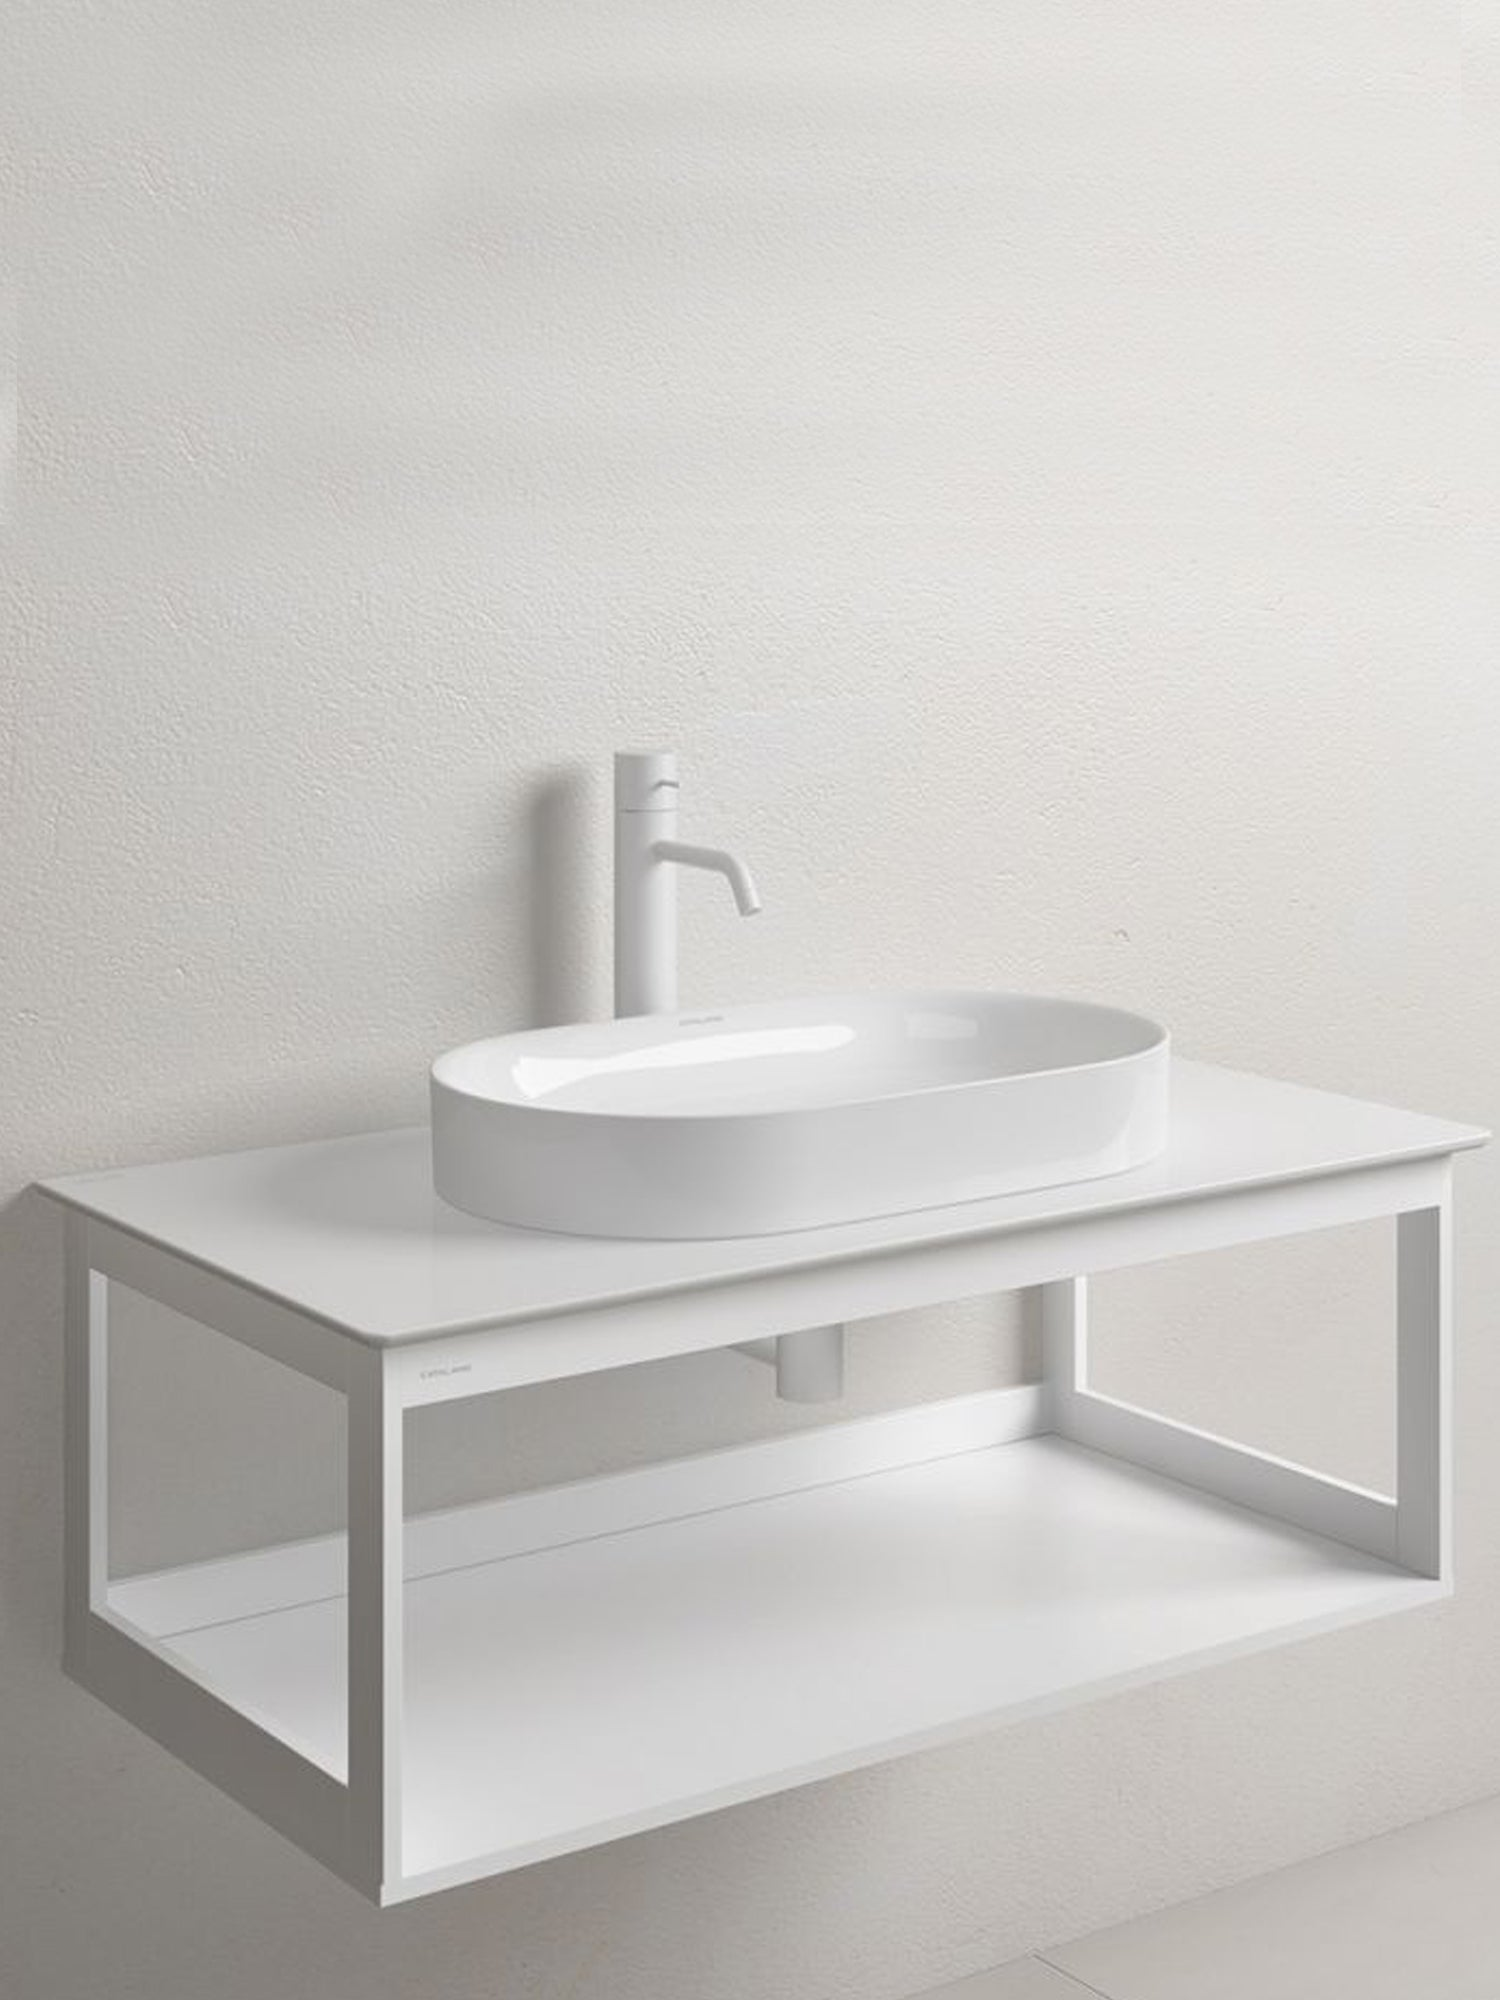 Horizon Countertop Basin #60AHZ